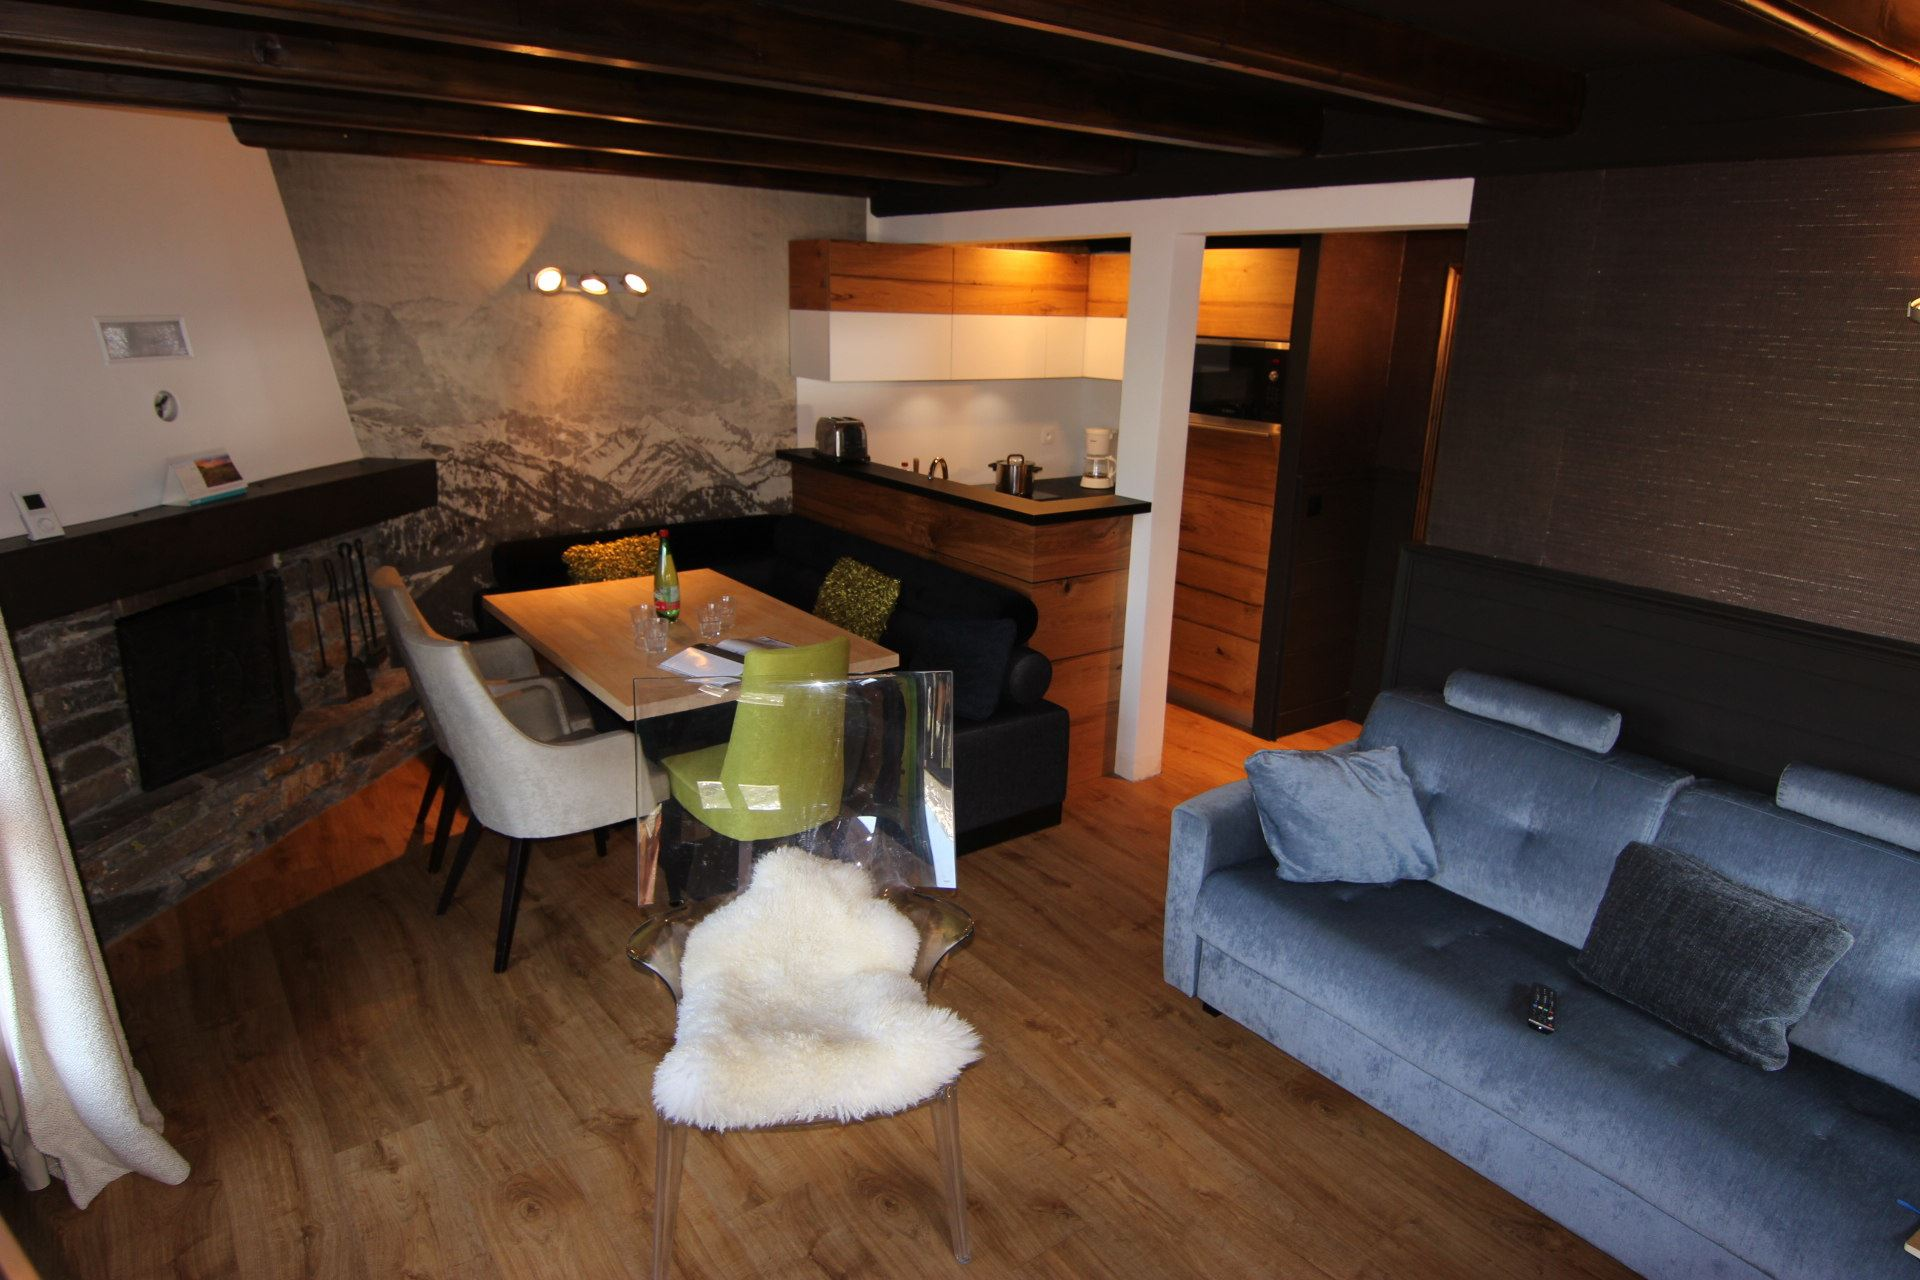 CHALET EMERAUDE 2 / 3 PIECES 6 PERSONNES - 3 FLOCONS OR - VTI